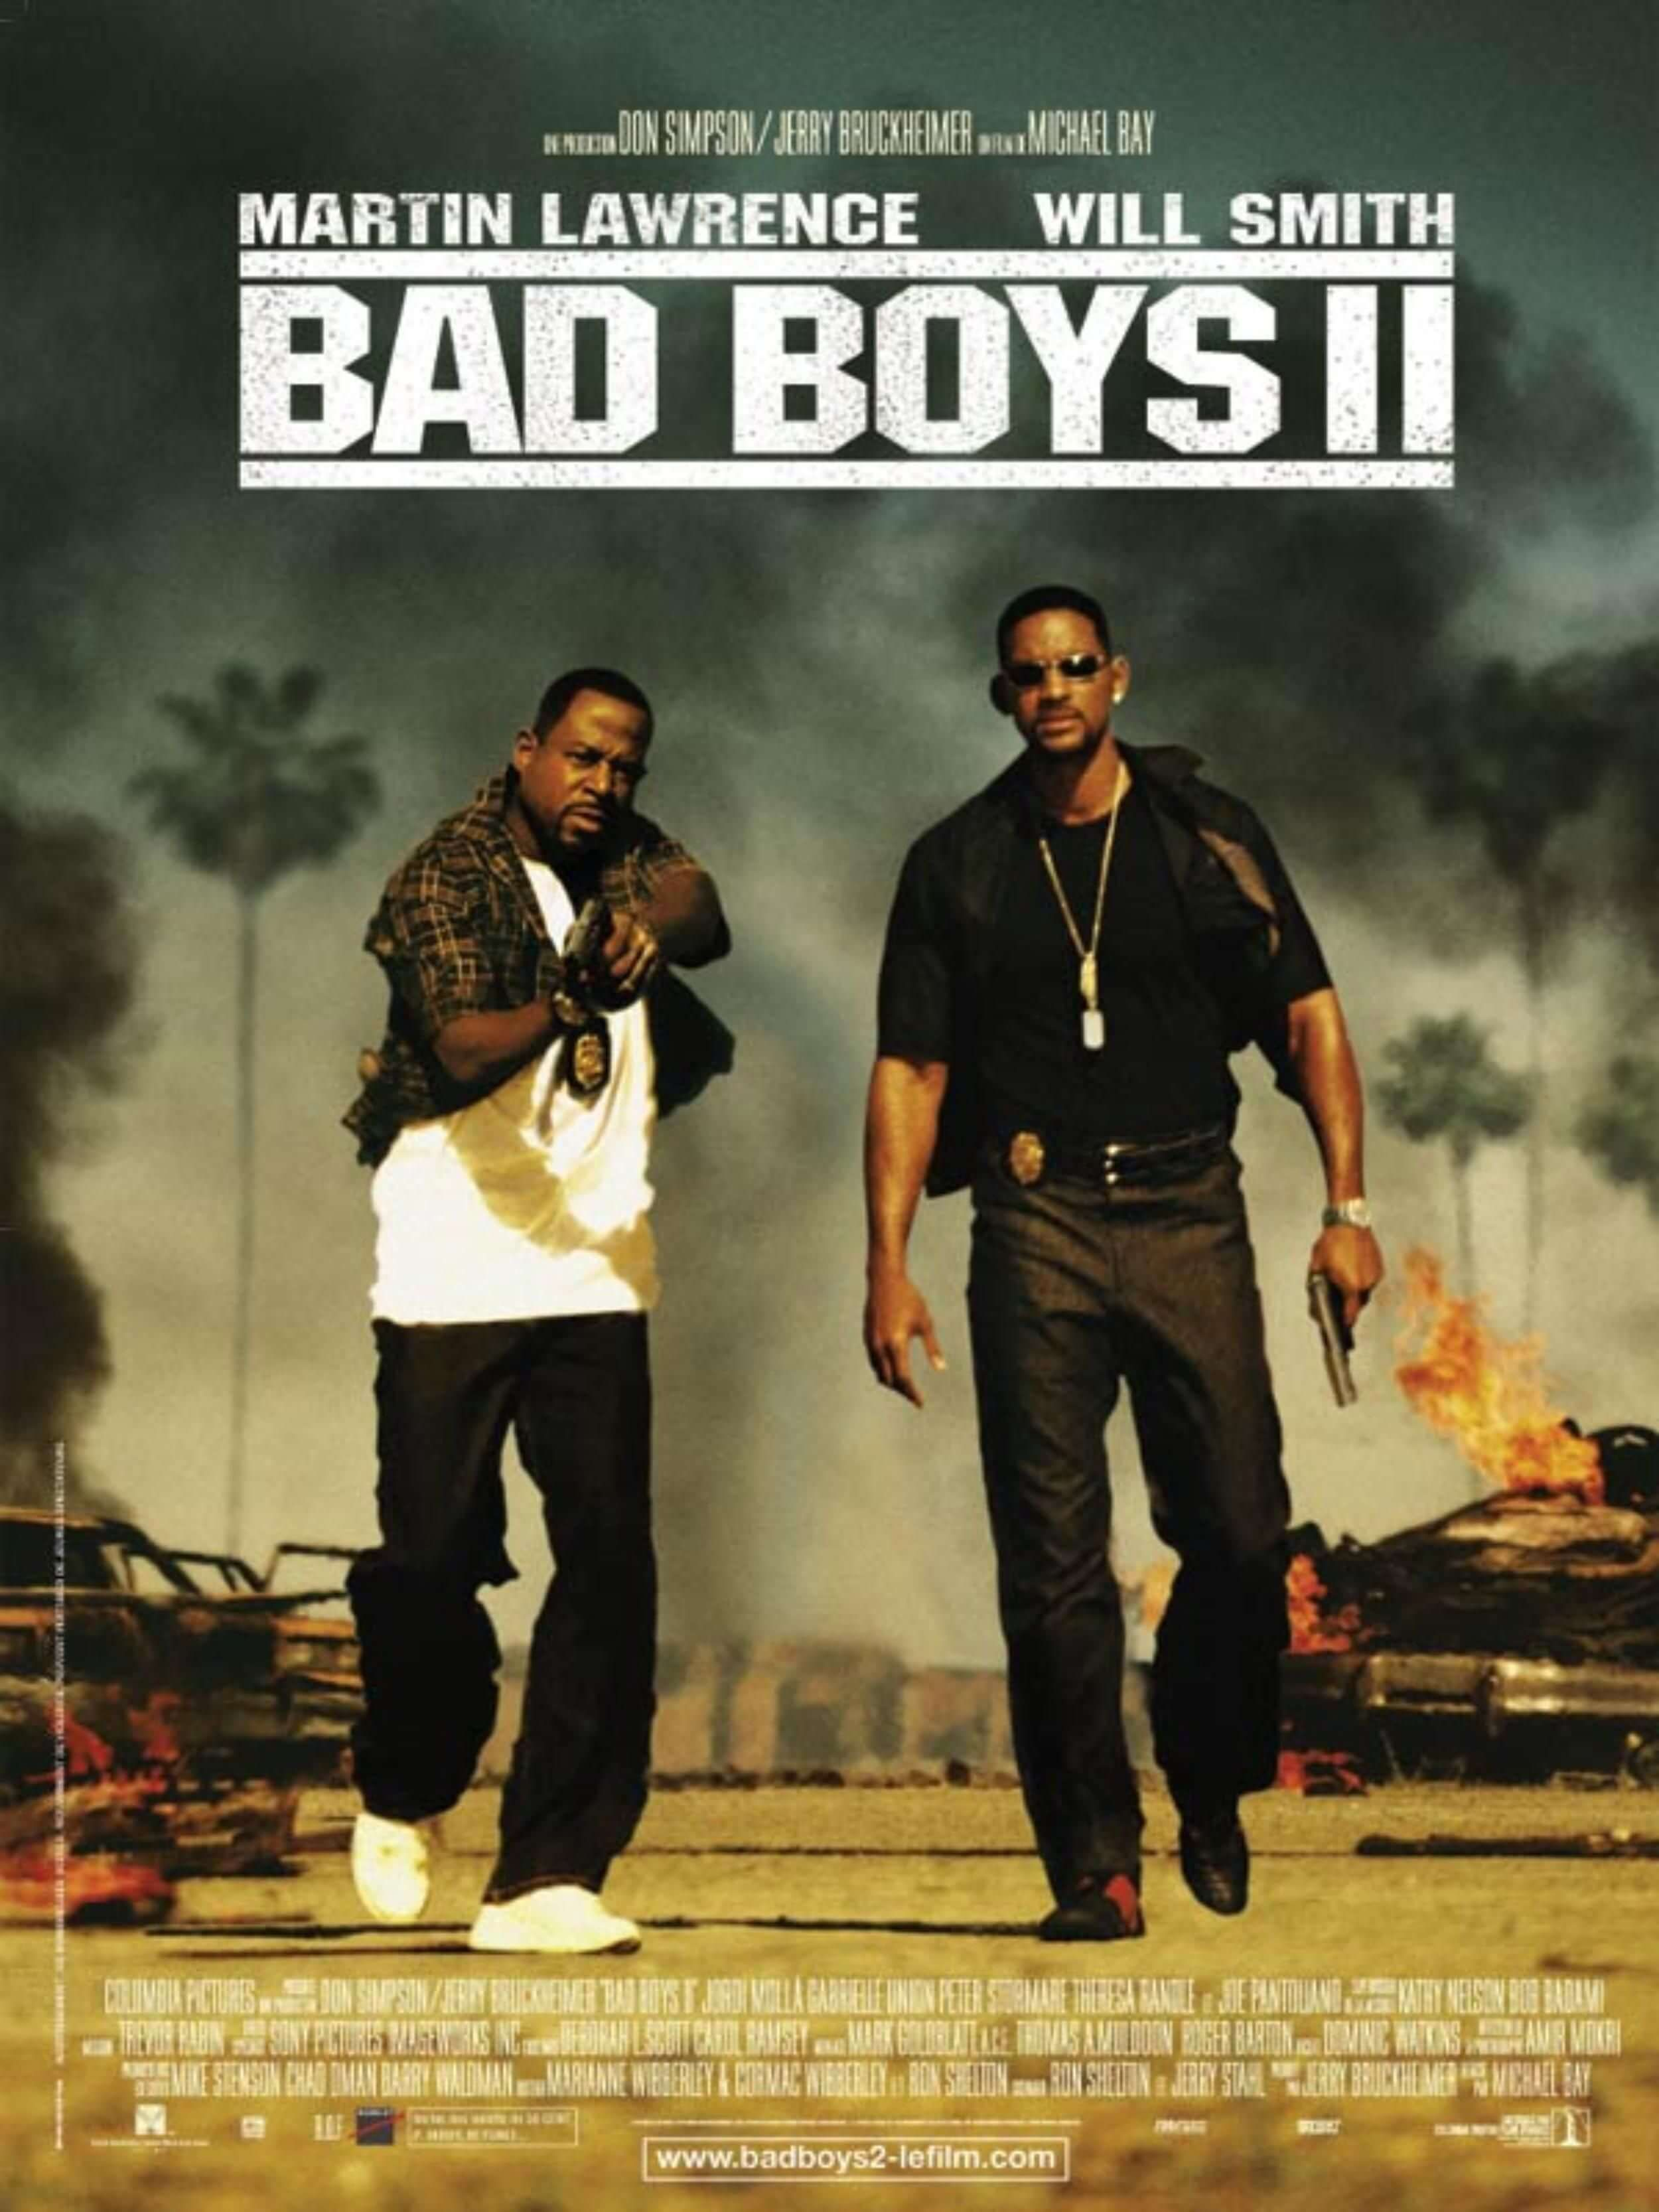 Upcoming Hollywood Movies In 2020 That Will Make Your Year Fantabulous Bad Boys Bad Boys Movie Will Smith Bad Boys